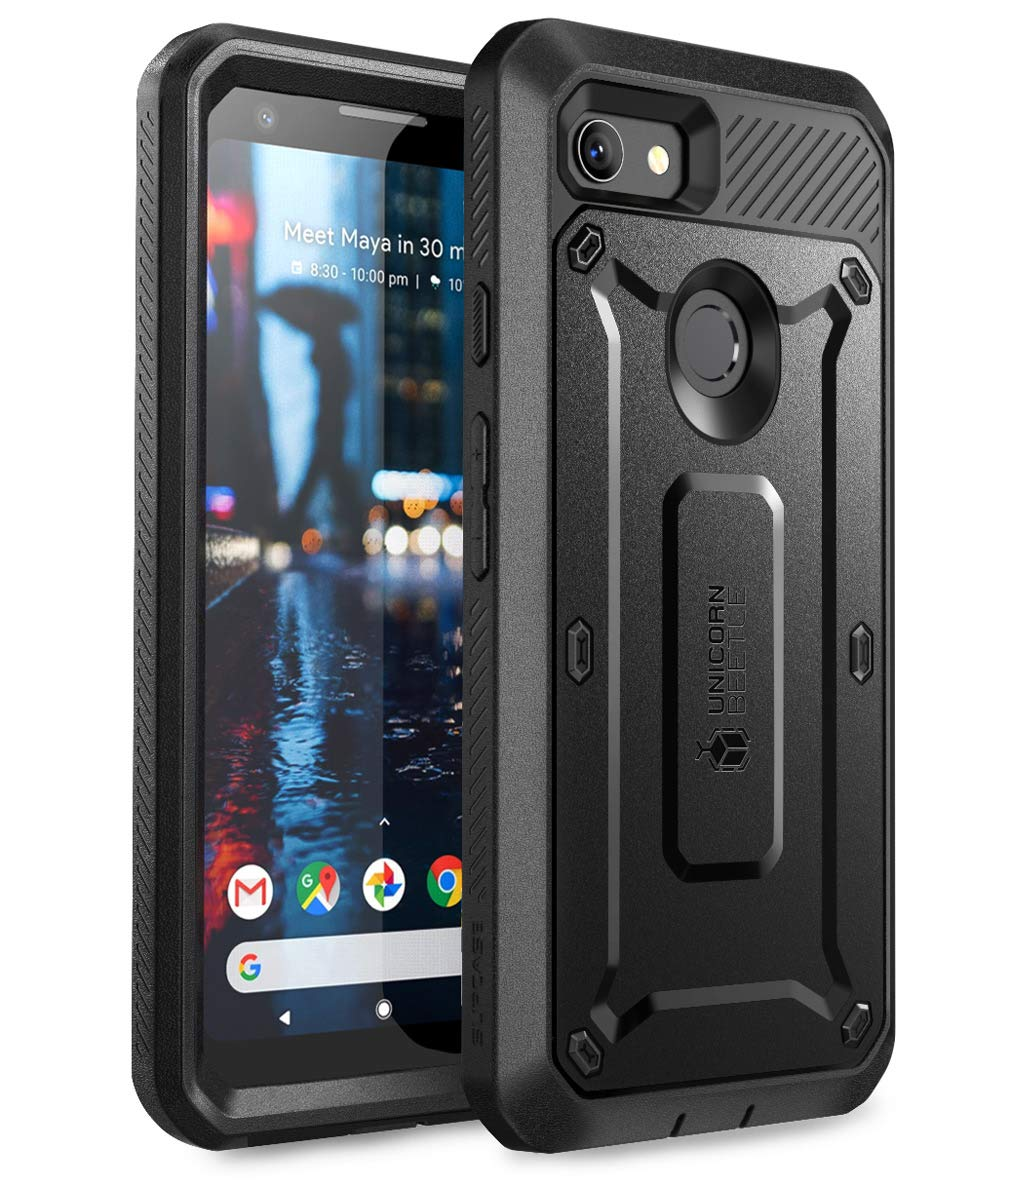 SUPCASE Unicorn Beetle Pro Series Designed for Google Pixel 3a XL Case, Full-Body Rugged Holster Case with Built-in Screen Protector for Google Pixel 3a XL 2019 Release (Black) by SupCase